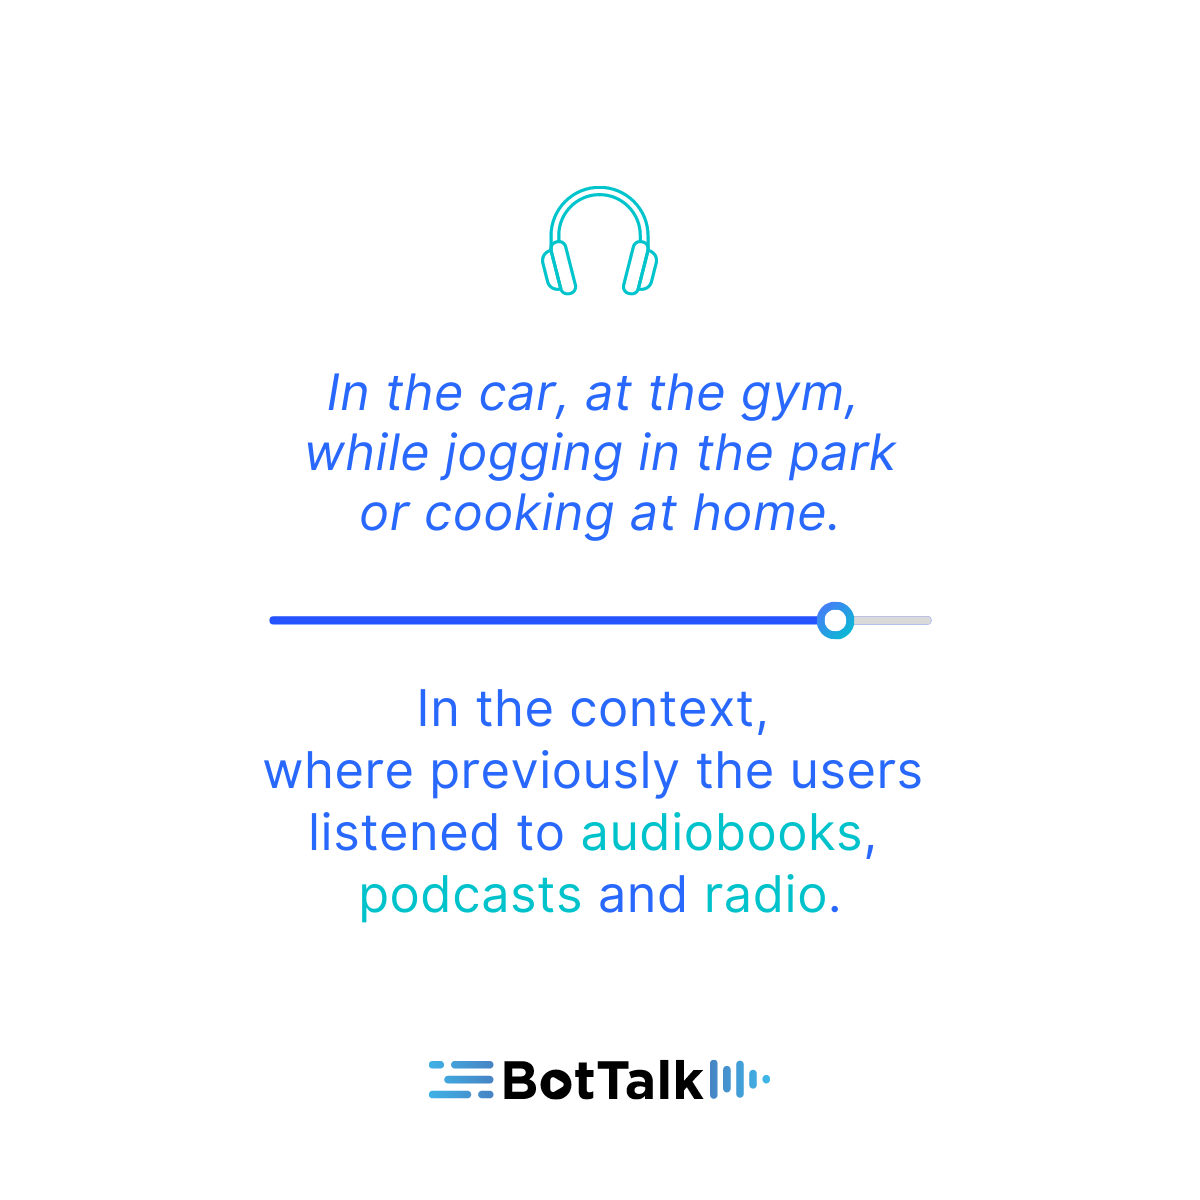 Text-to-speech articles take the place in the new context, that was previously taken by audiobooks, podcasts and radio.